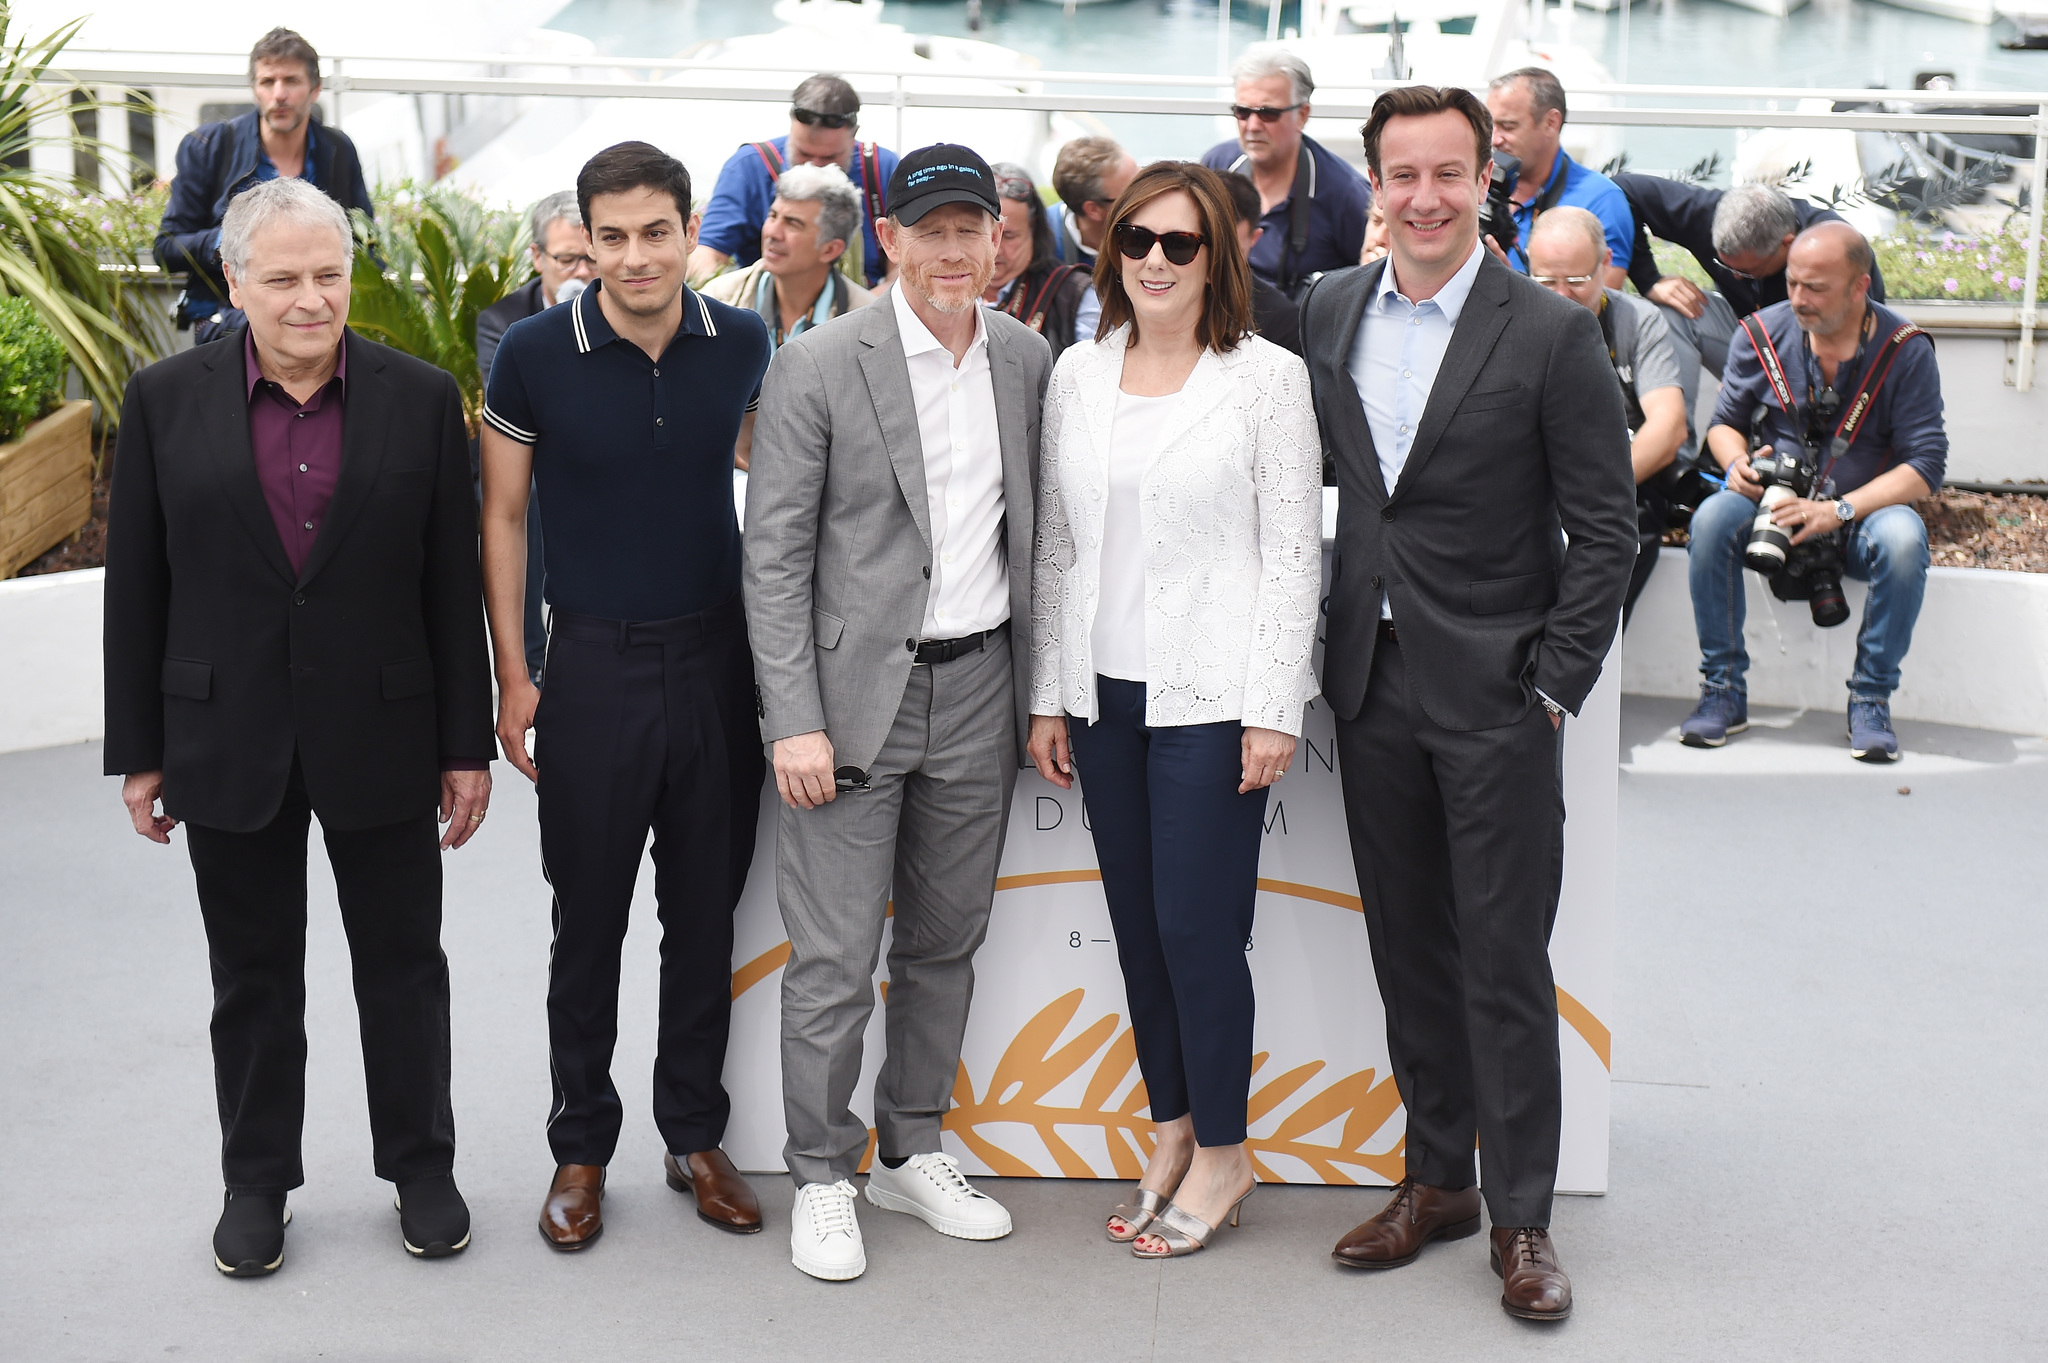 Ron Howard, Lawrence Kasdan, Simon Emanuel, Kathleen Kennedy, and Jonathan Kasdan at an event for Solo: A Star Wars Story (2018)